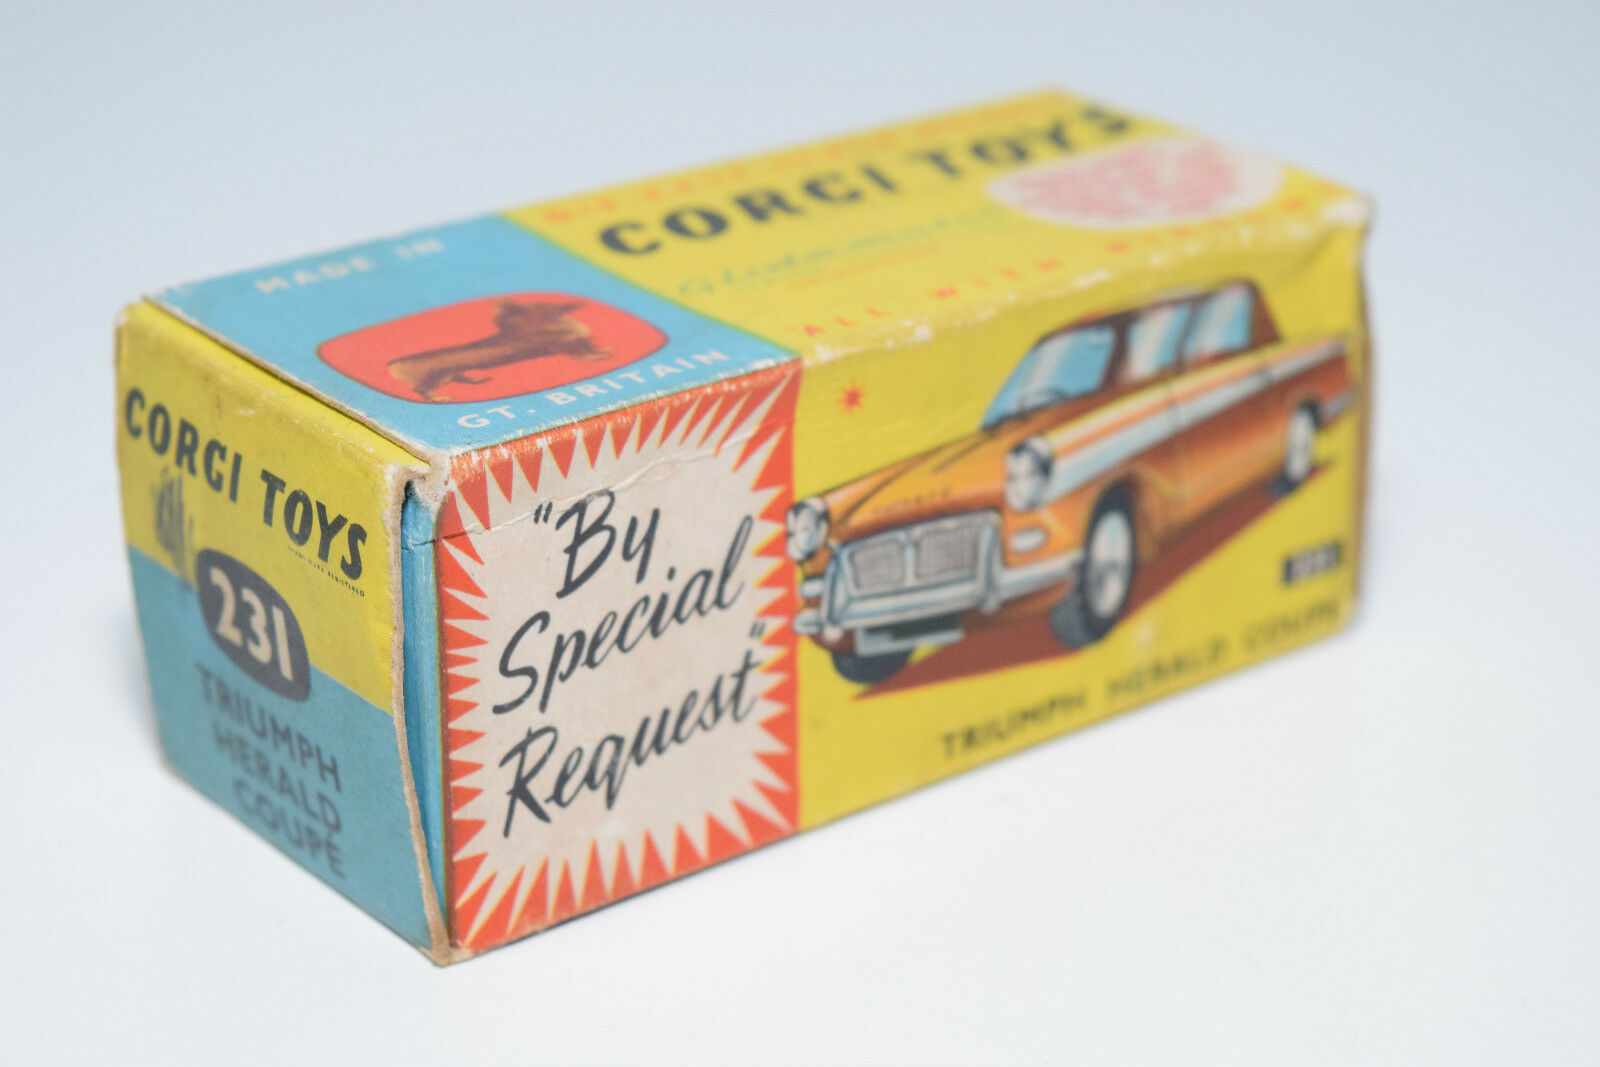 CORGI TOYS 231 TRIUMPH HERALD COUPE ORIGINAL EMPTY BOX EXCELLENT CONDITION